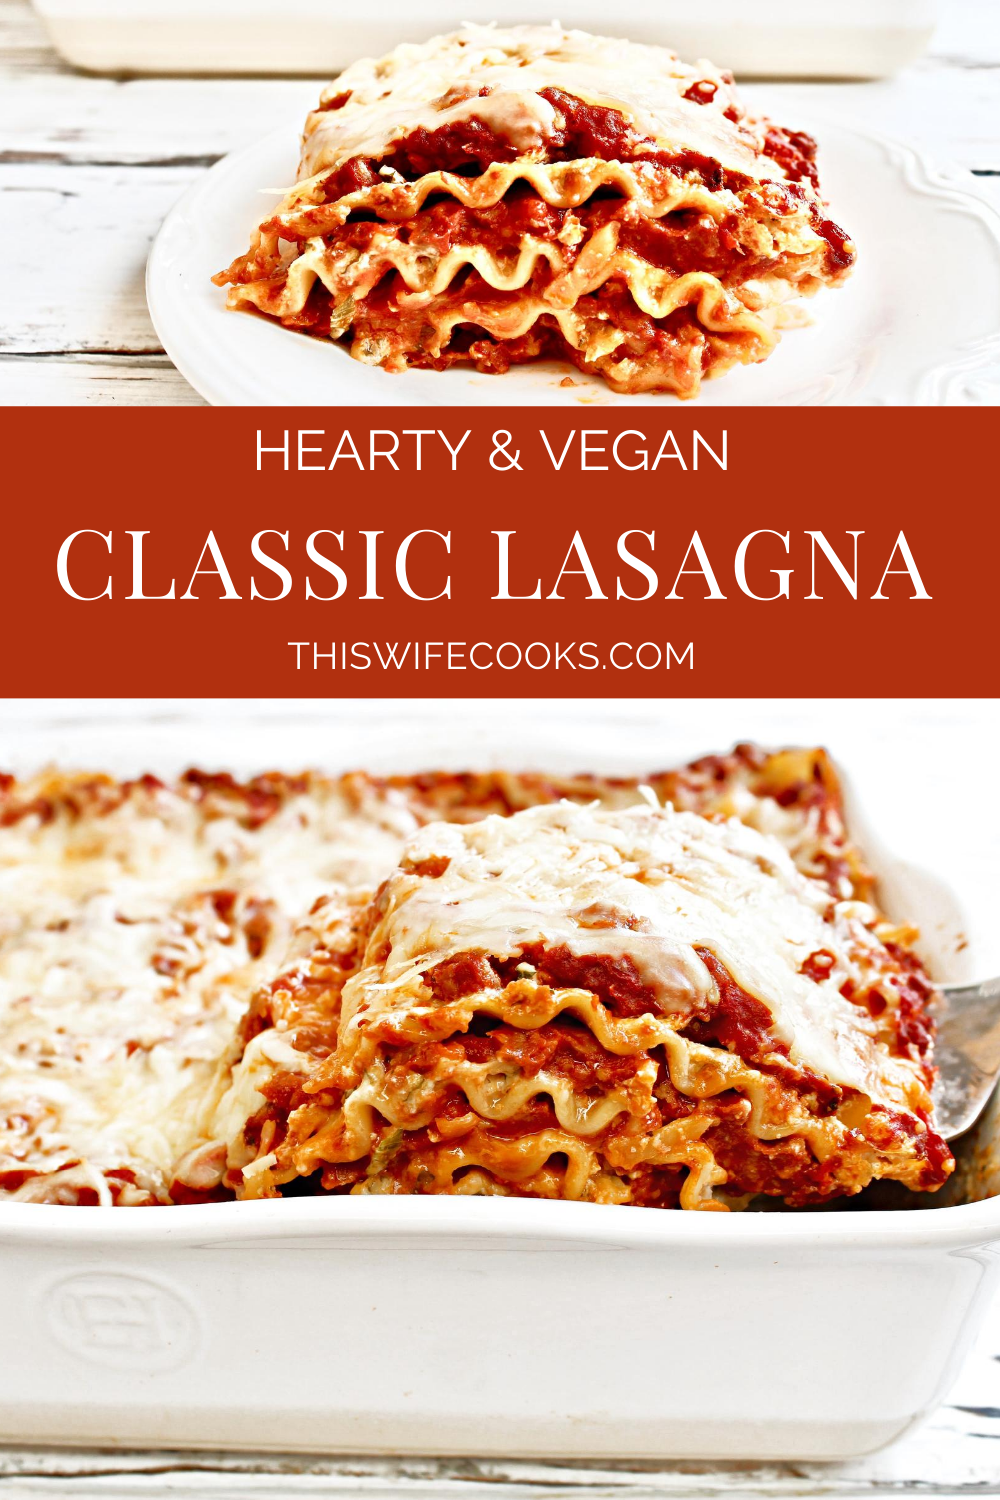 Classic Lasagna - 100% vegan meat sauce layered with lasagna noodles, dairy-free ricotta, mozzarella, & parmesan for a hearty and delicious spin on the comfort food classic! via @thiswifecooks